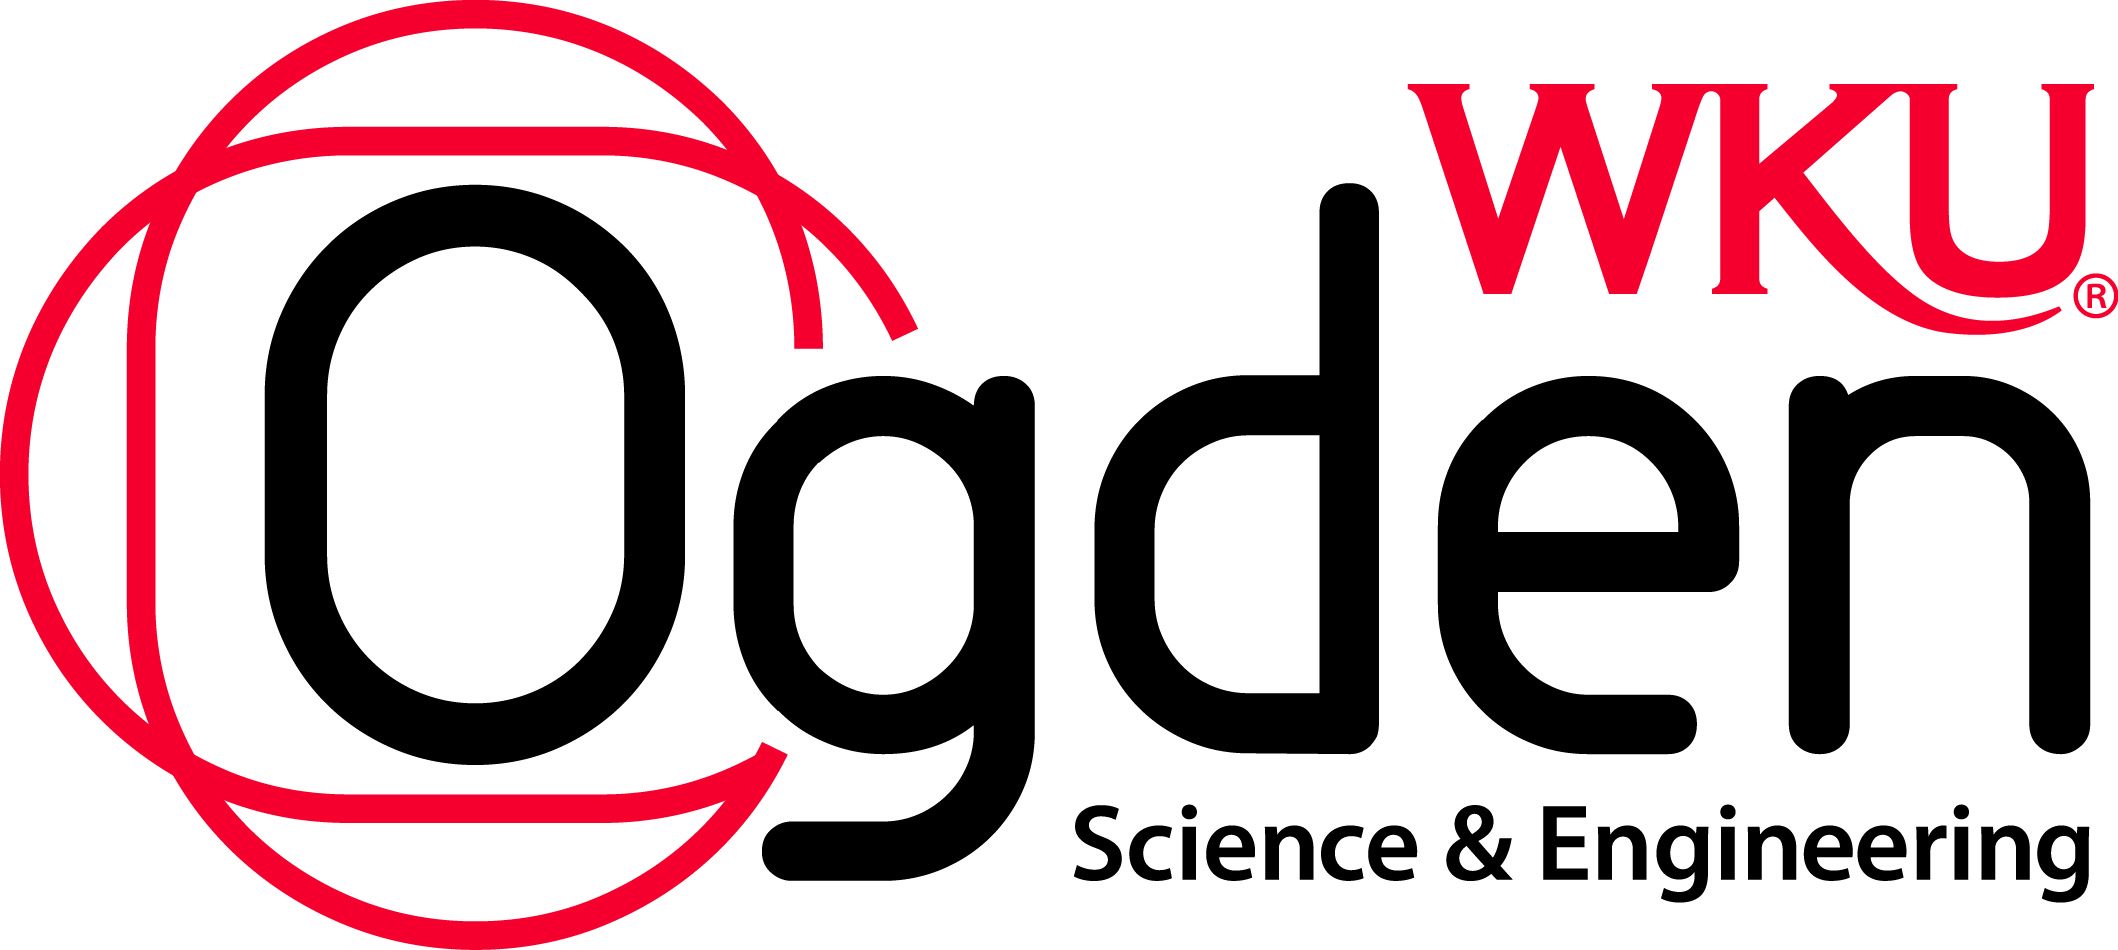 ogden logo red red black version